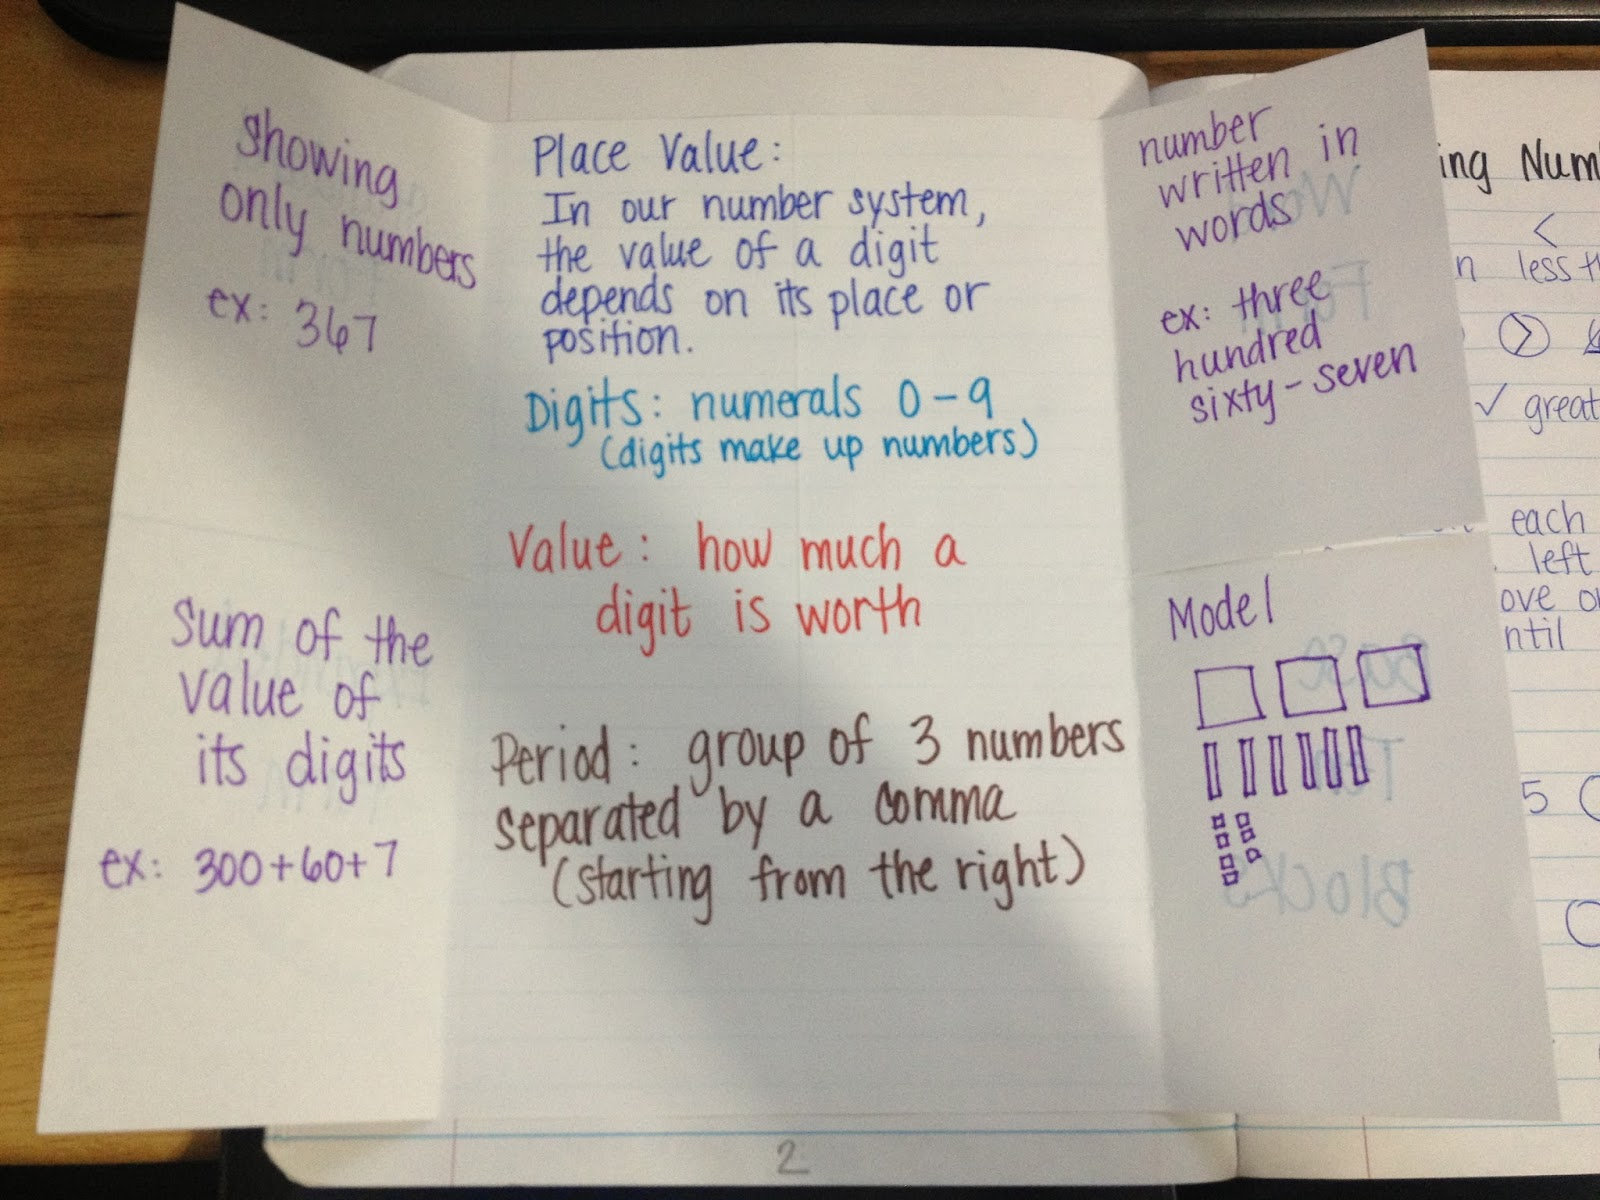 image_5  Th Grade Math Standard Form Example on money worksheets for 3rd grade, printable multiplication worksheets 3rd grade, math arrays 3rd grade, rounding rap 4th grade, standard form word problems, standard form of a line, math expressions 5th grade, place value 2nd grade, standard form 3rd grade, standard form place value, mathbase 4th grade, standard form for 5th grade, standard form numbers, ixl 4th grade, numbers in expanded form for 2nd grade, expanded form 4th grade, adding fractions worksheets 4th grade, standard teaching application, rounding worksheets for 4th grade, place value patterns 5th grade,